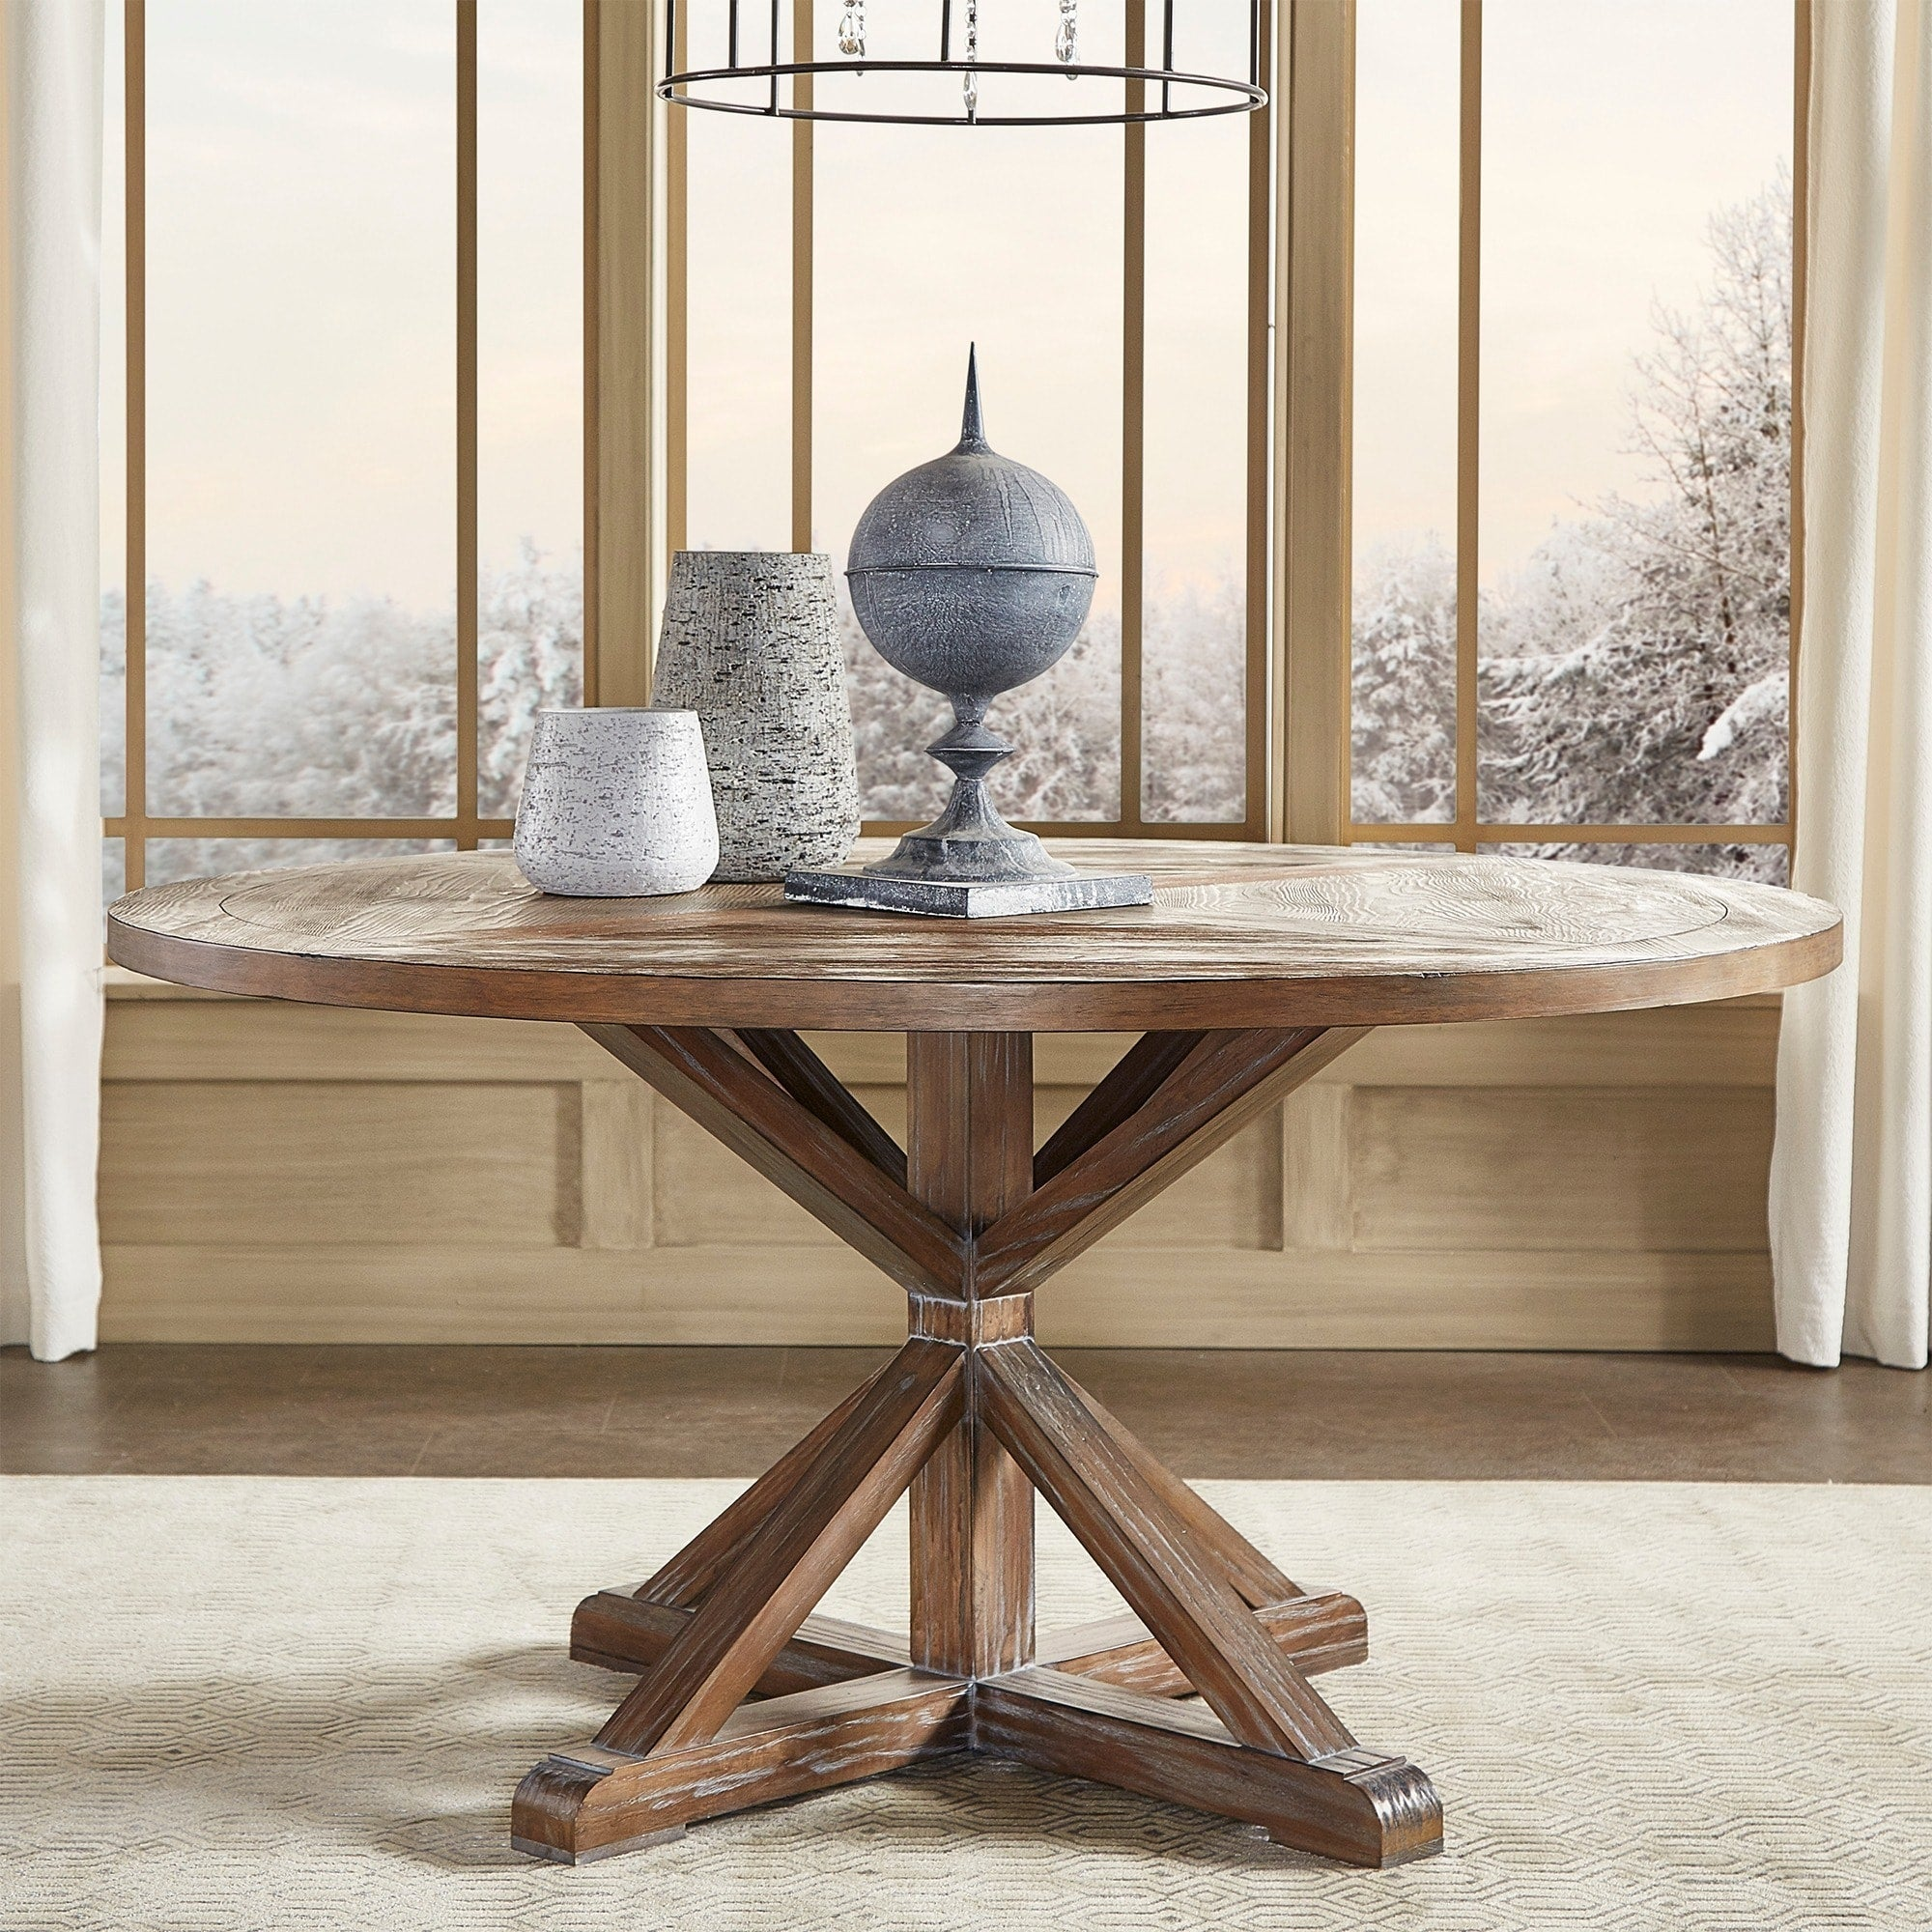 Rustic X-base Round Pine Wood Dining Table